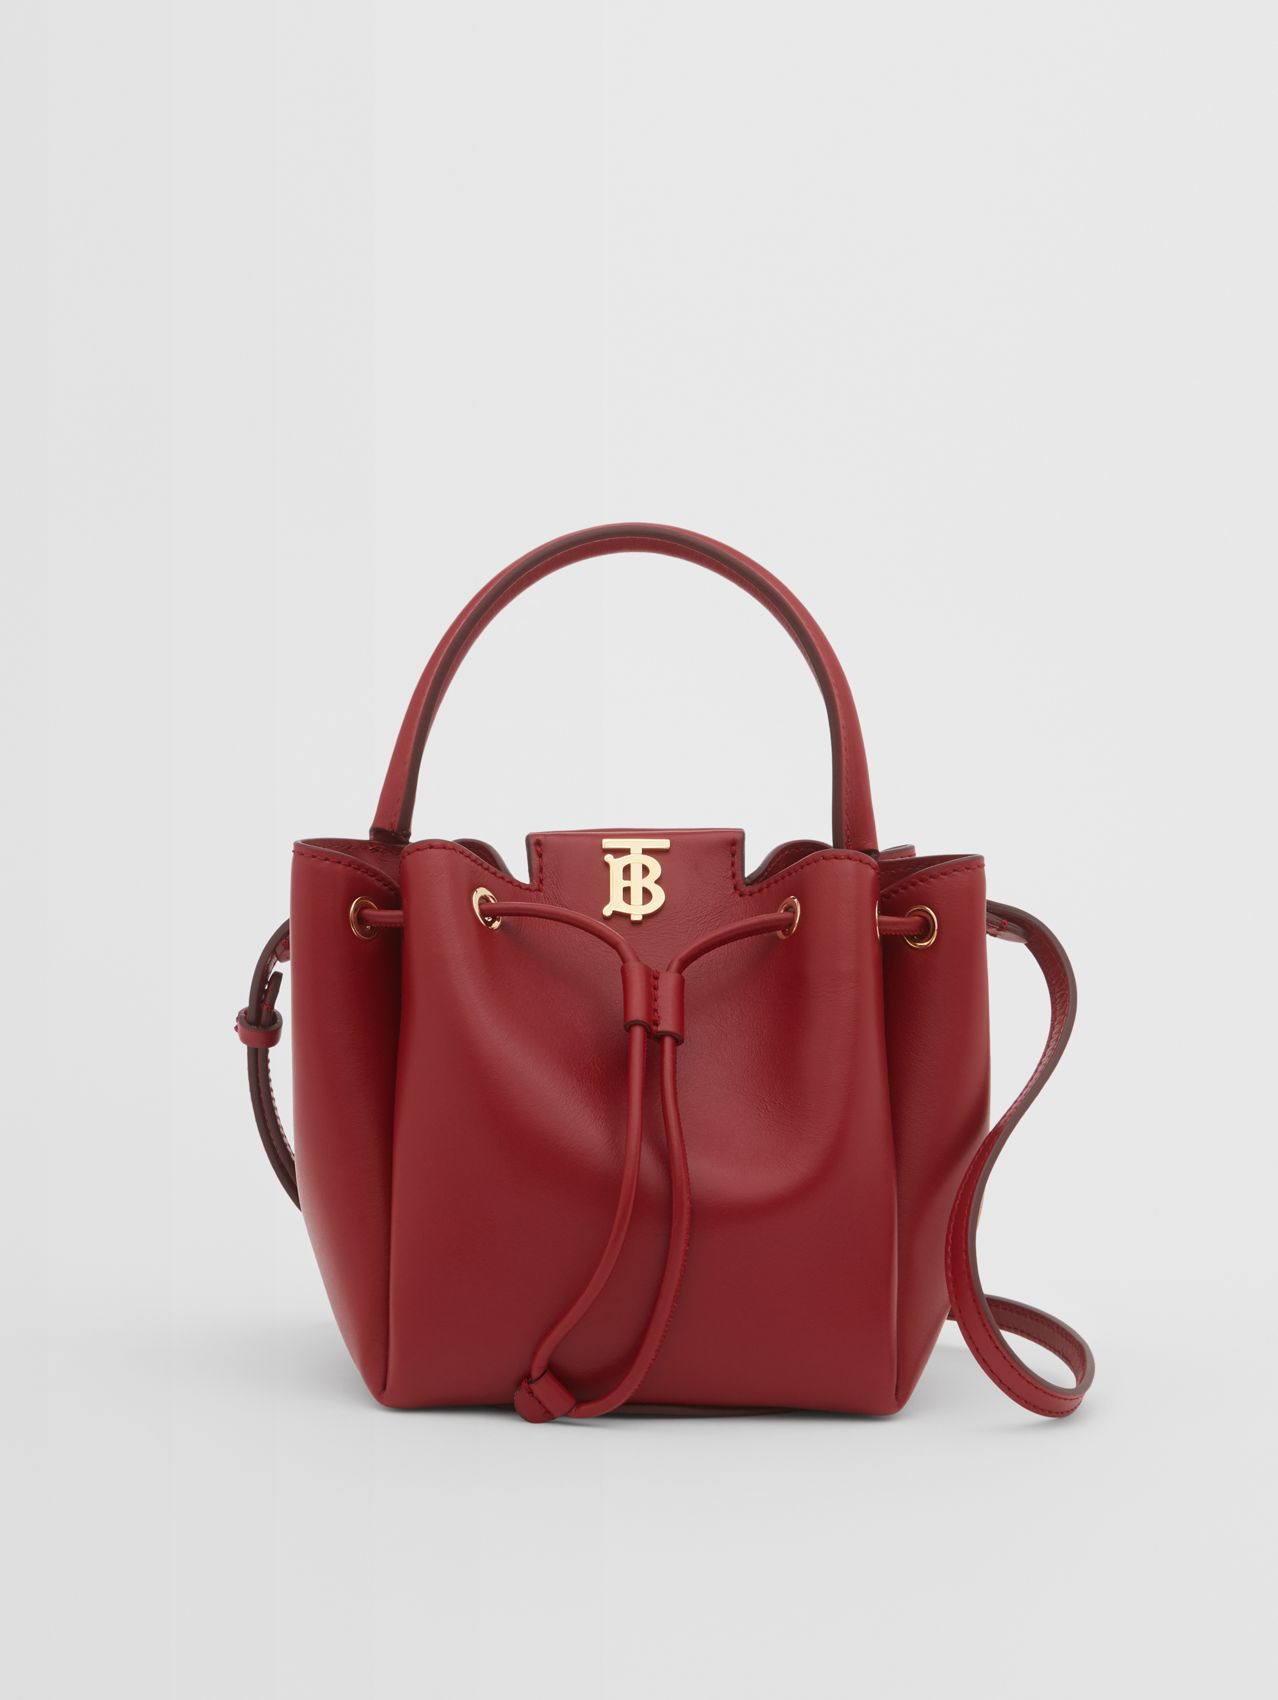 Monogram Motif Leather Bucket Bag in Dark Carmine